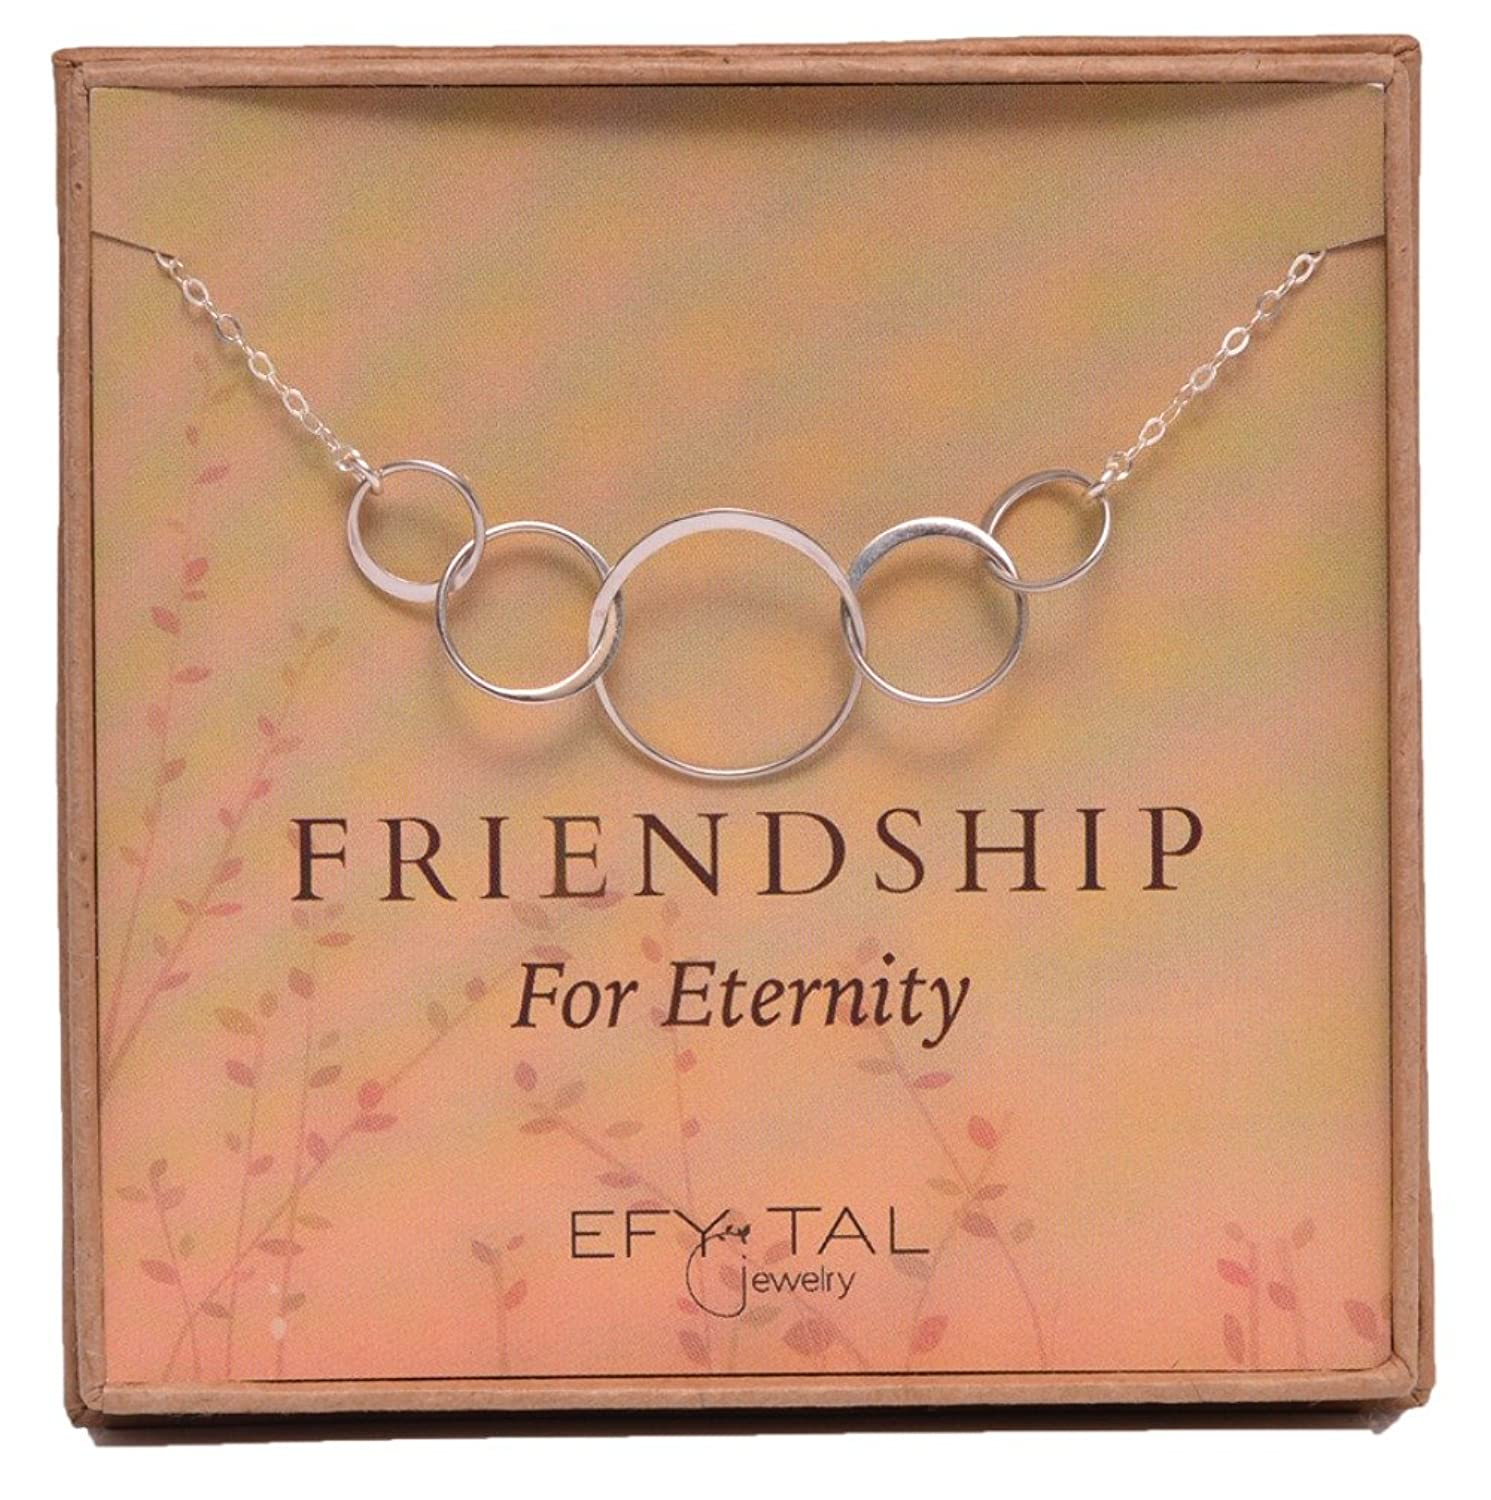 Five Friend Necklace 5 Sterling Silver Friendship Interlocking Infinity Circles Gift 4 Best Friends Group